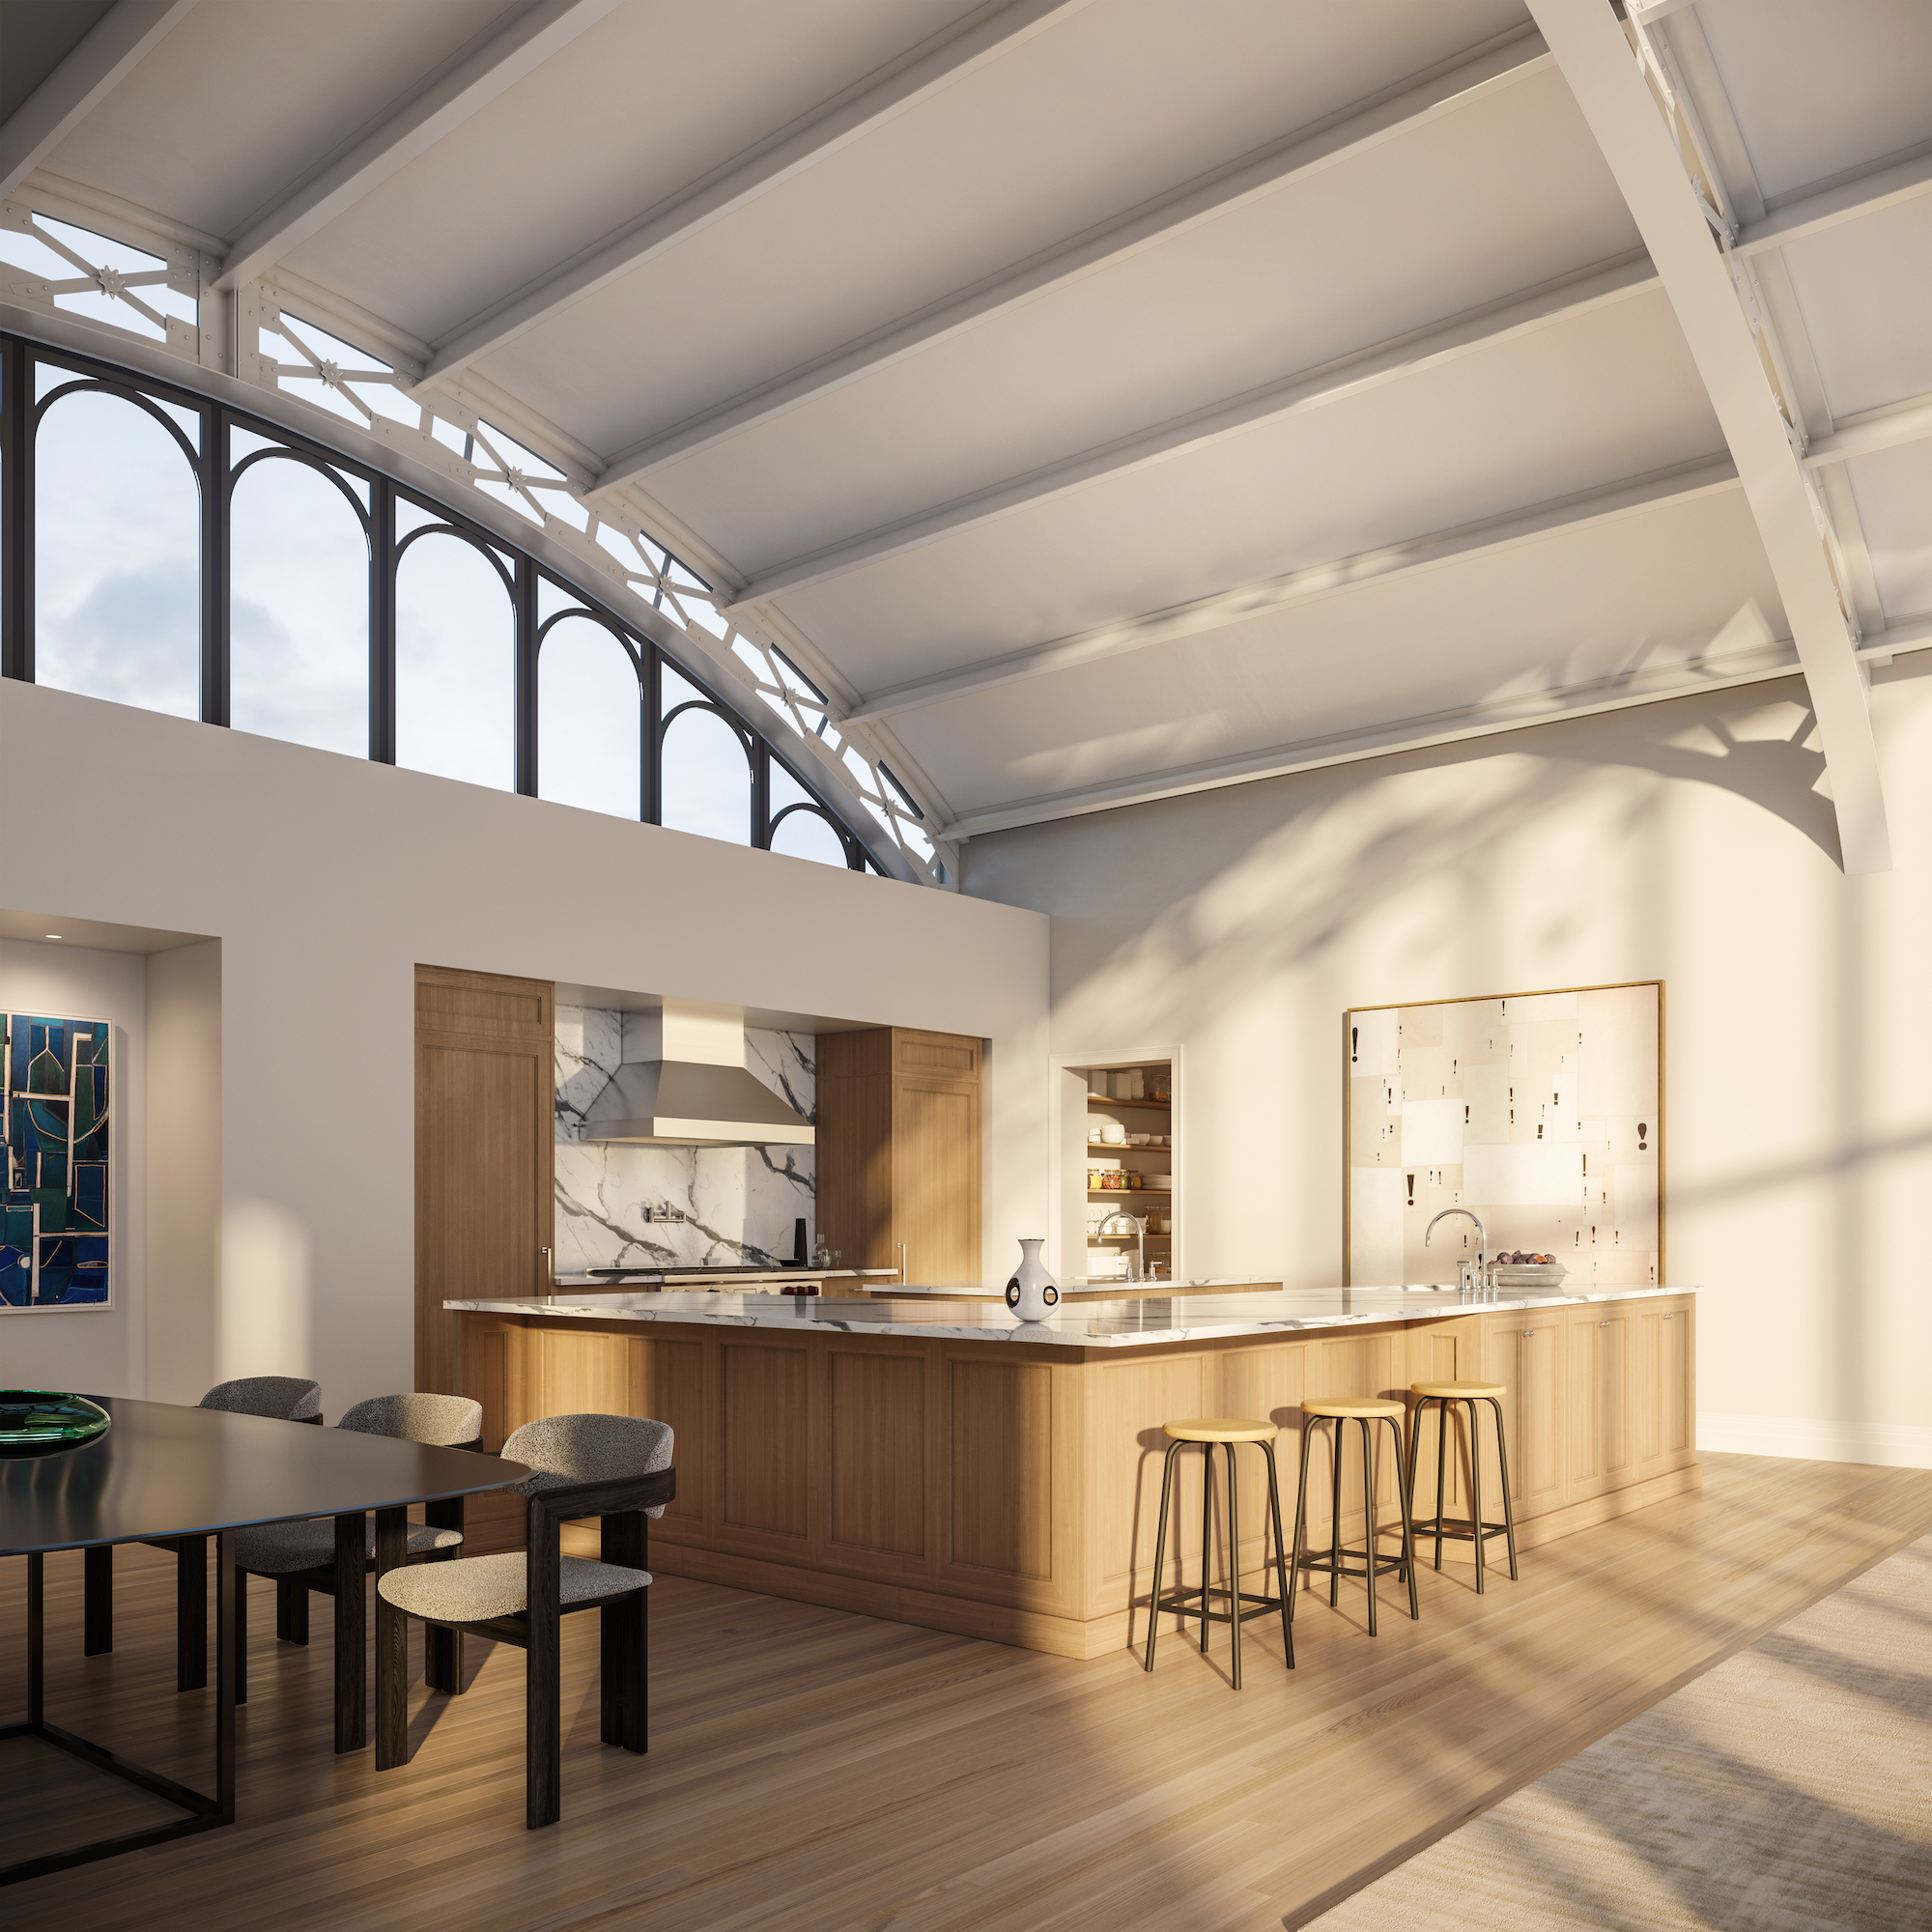 Upper West Side school-to-condo conversion reveals $18M